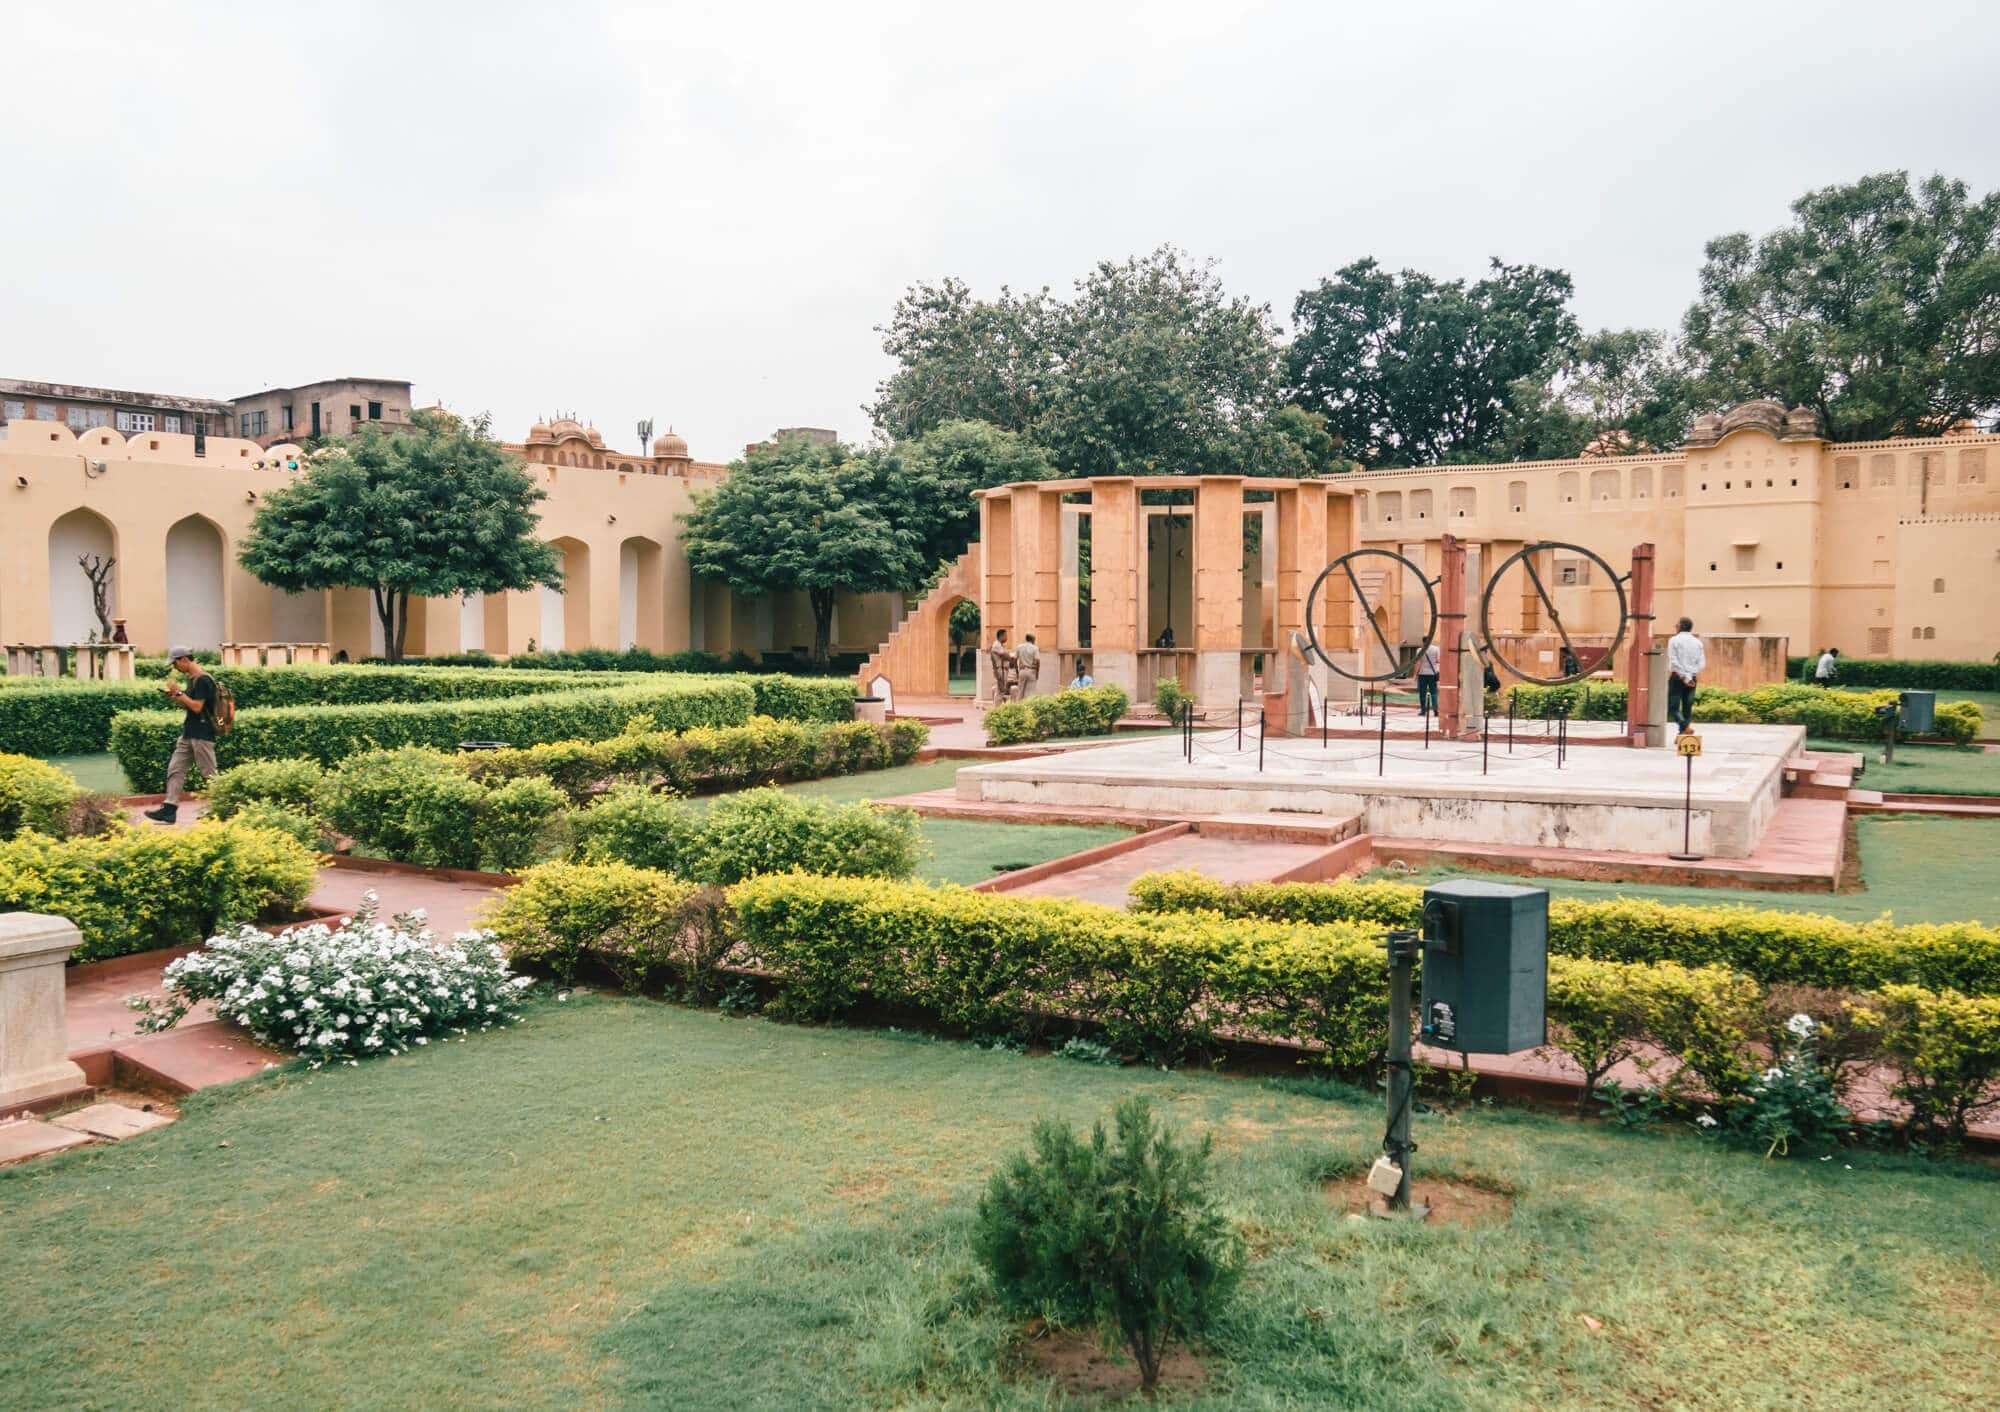 How to spend 2 days in Jaipur, India - UNESCO World Heritage Site Jantar Mantar